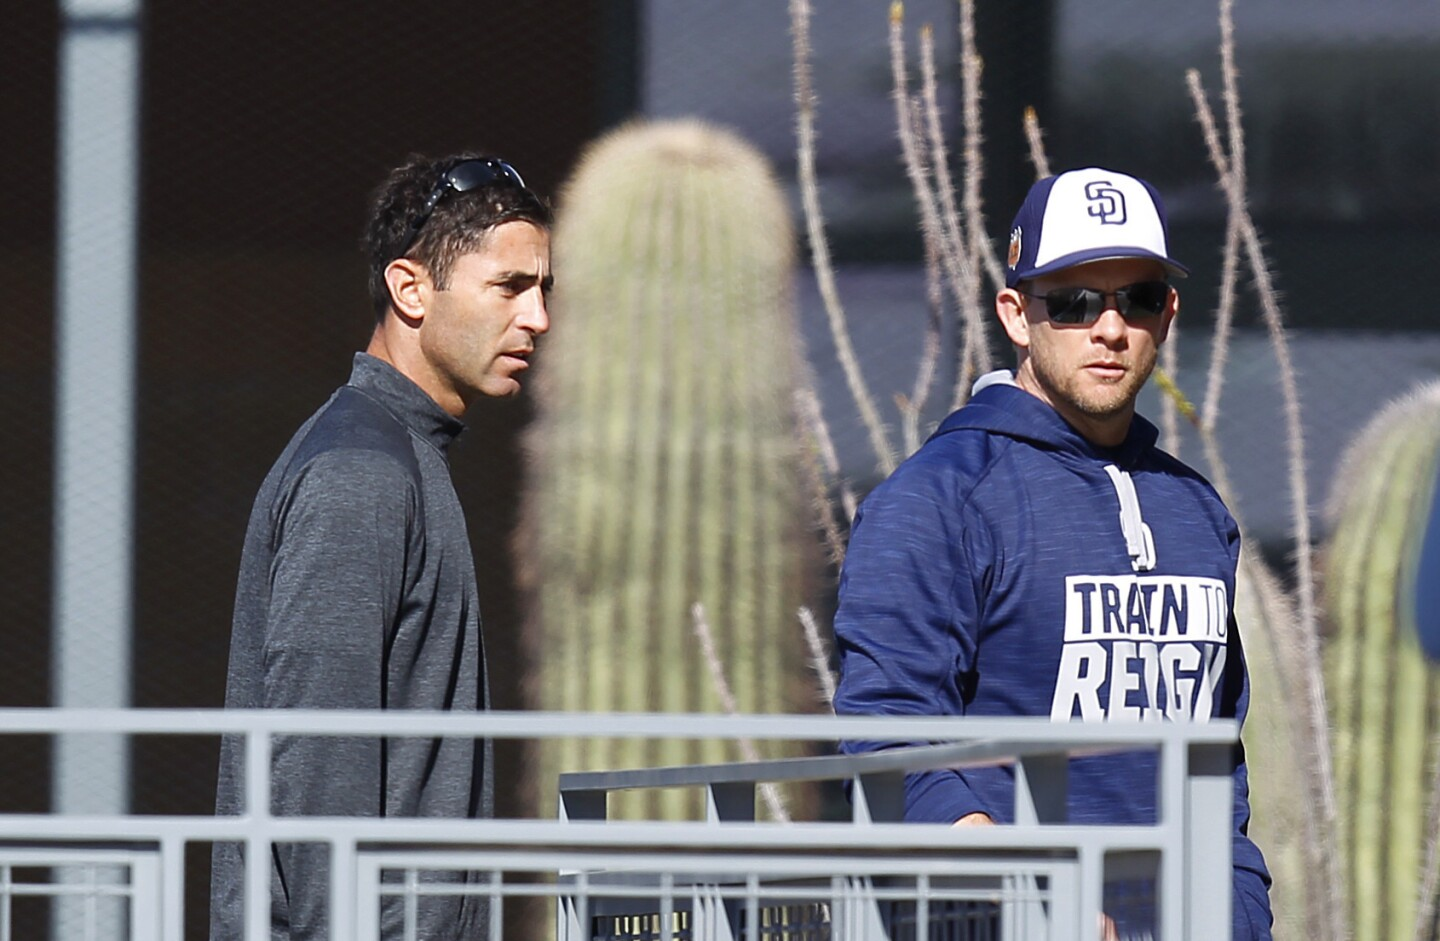 San Diego Padres General Manager A.J. Preller and manager Andy Green walk to the clubhouse after a spring training practice. (Photo by K.C. Alfred/The San Diego Union-Tribune)